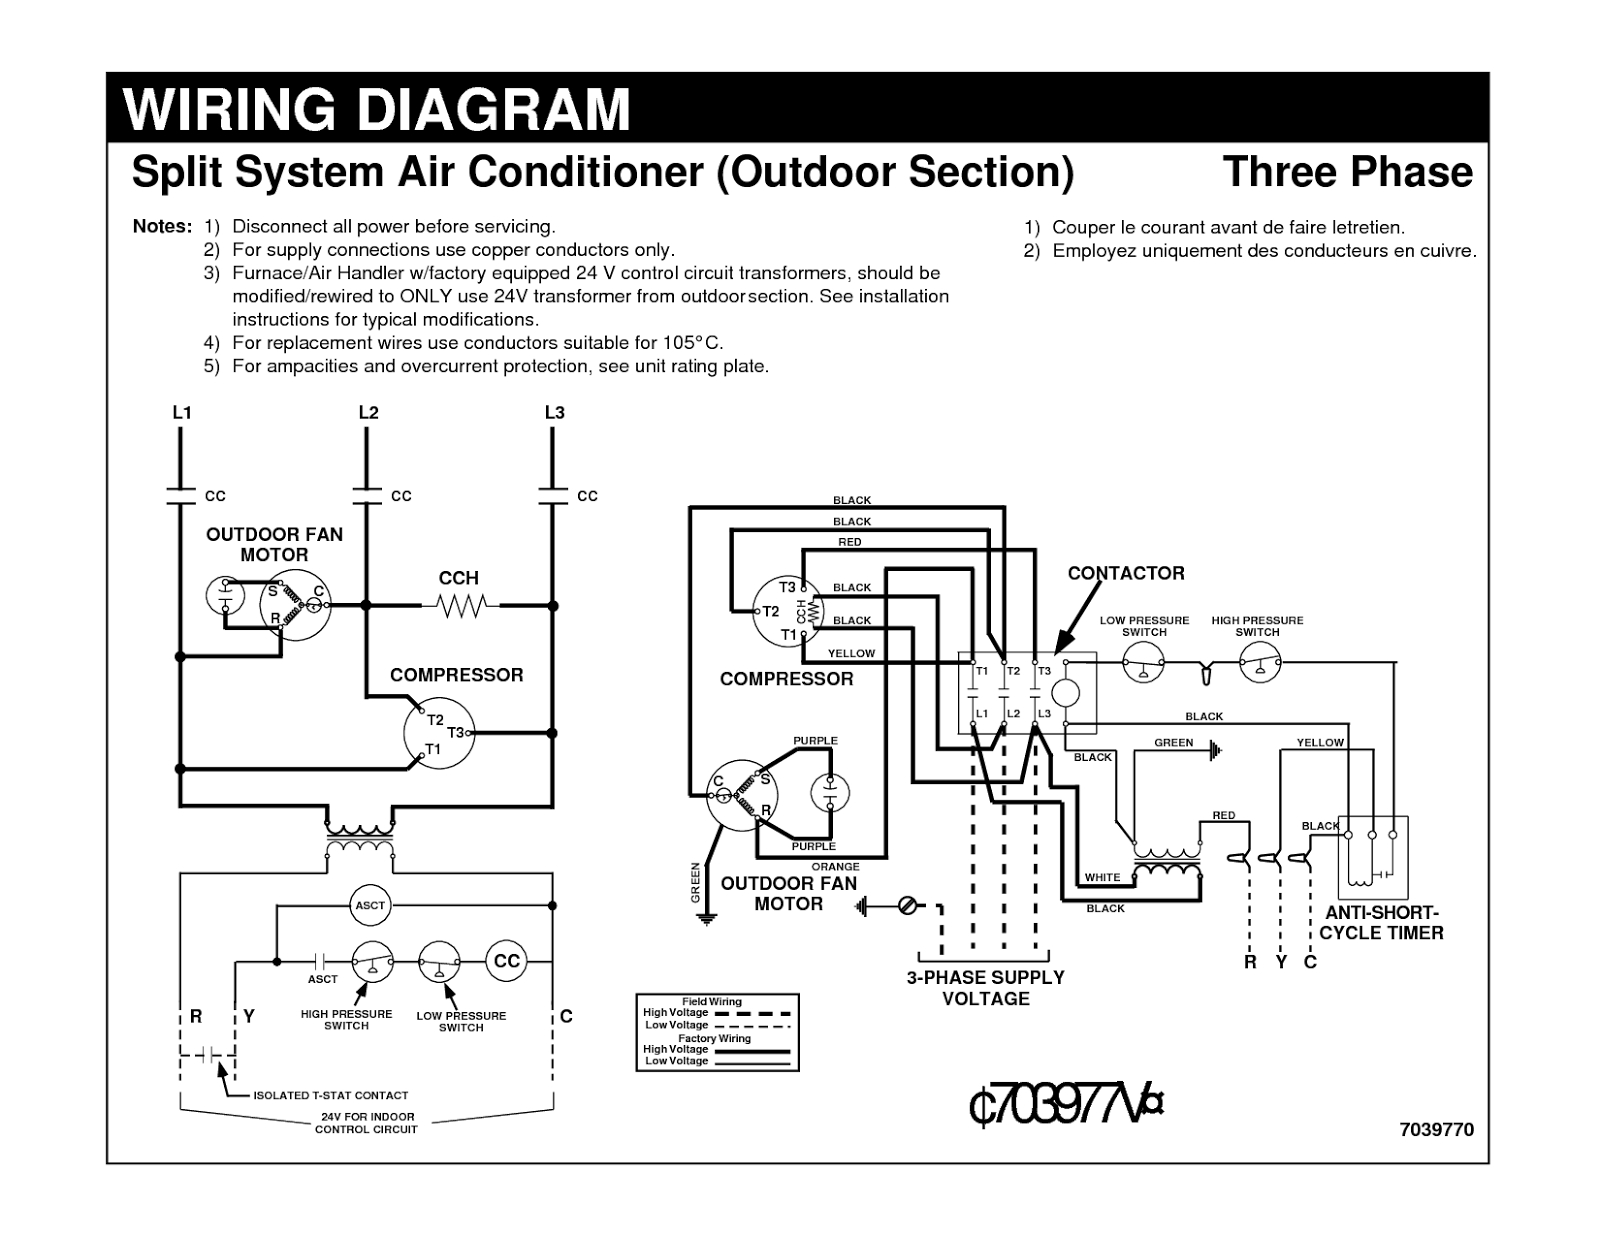 Ac Wire Diagram | Wiring Diagram - Air Conditioner Wiring Diagram Pdf